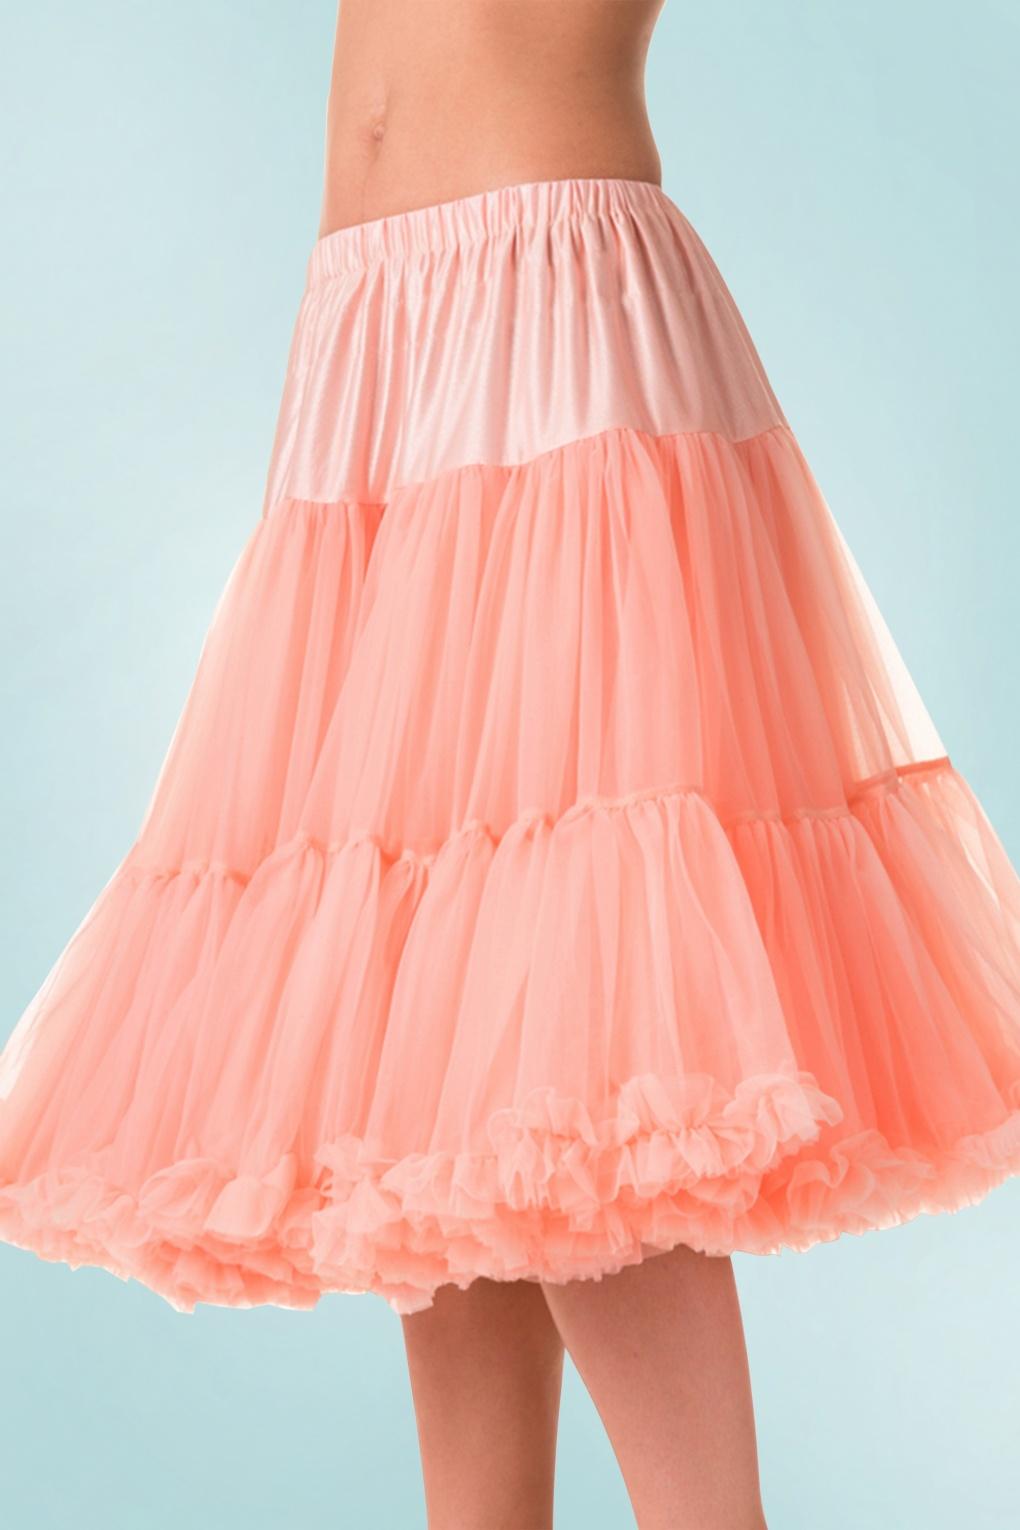 1950s Crinoline, Petticoats & Pettipants 50s Lola Lifeforms Petticoat in Salmon Pink £44.74 AT vintagedancer.com